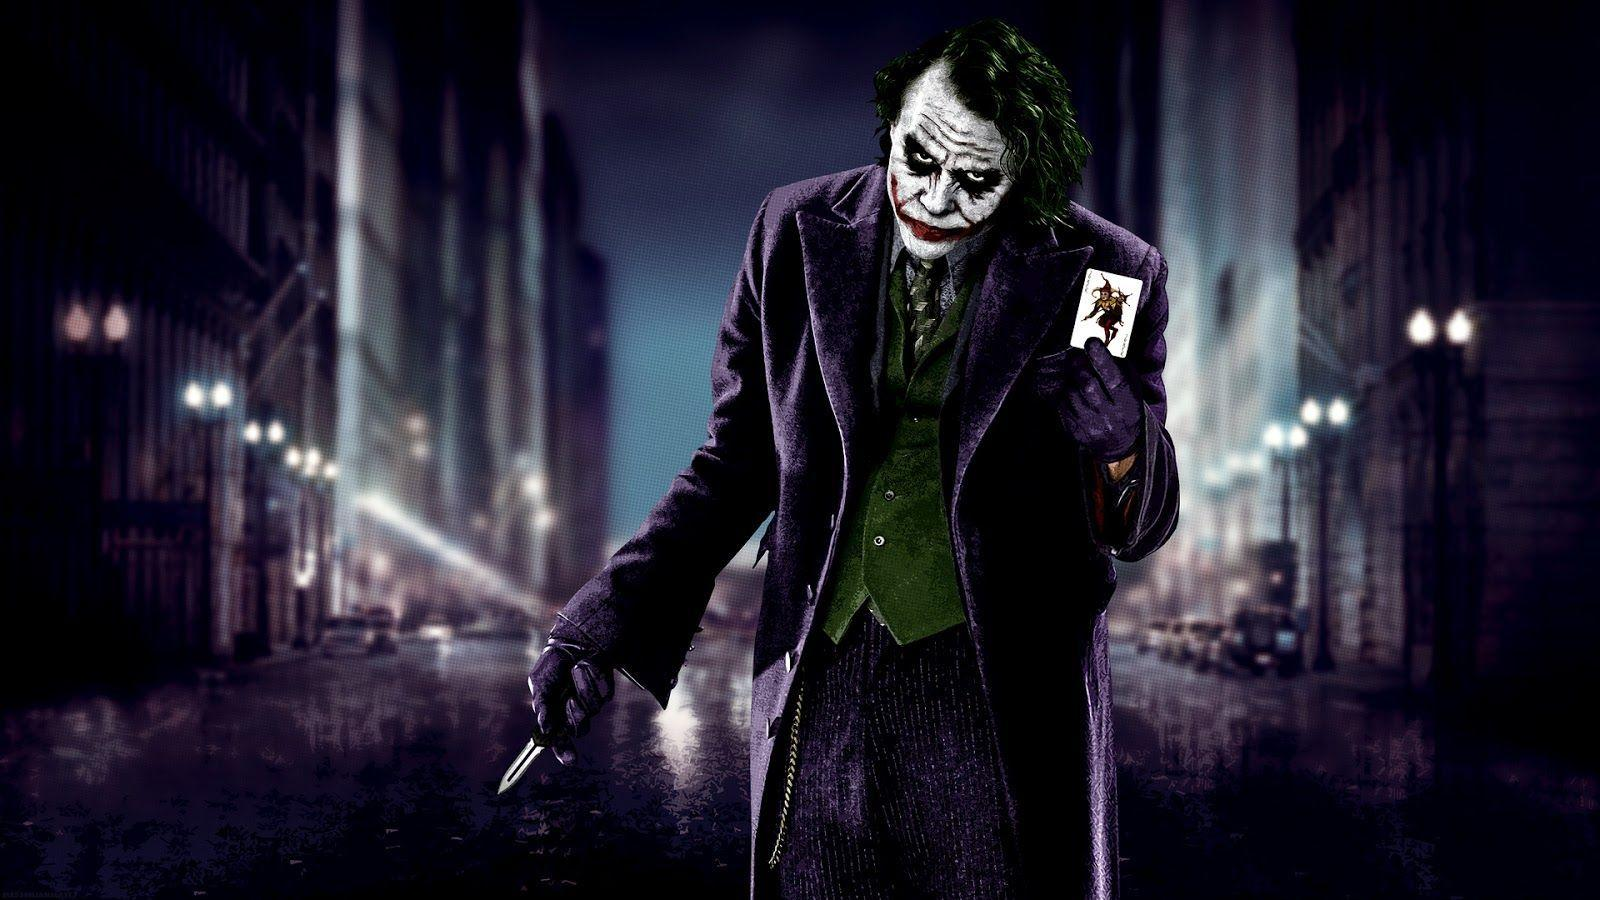 Heath Ledger Fan Club: Joker - Heath Ledger Wallpapers